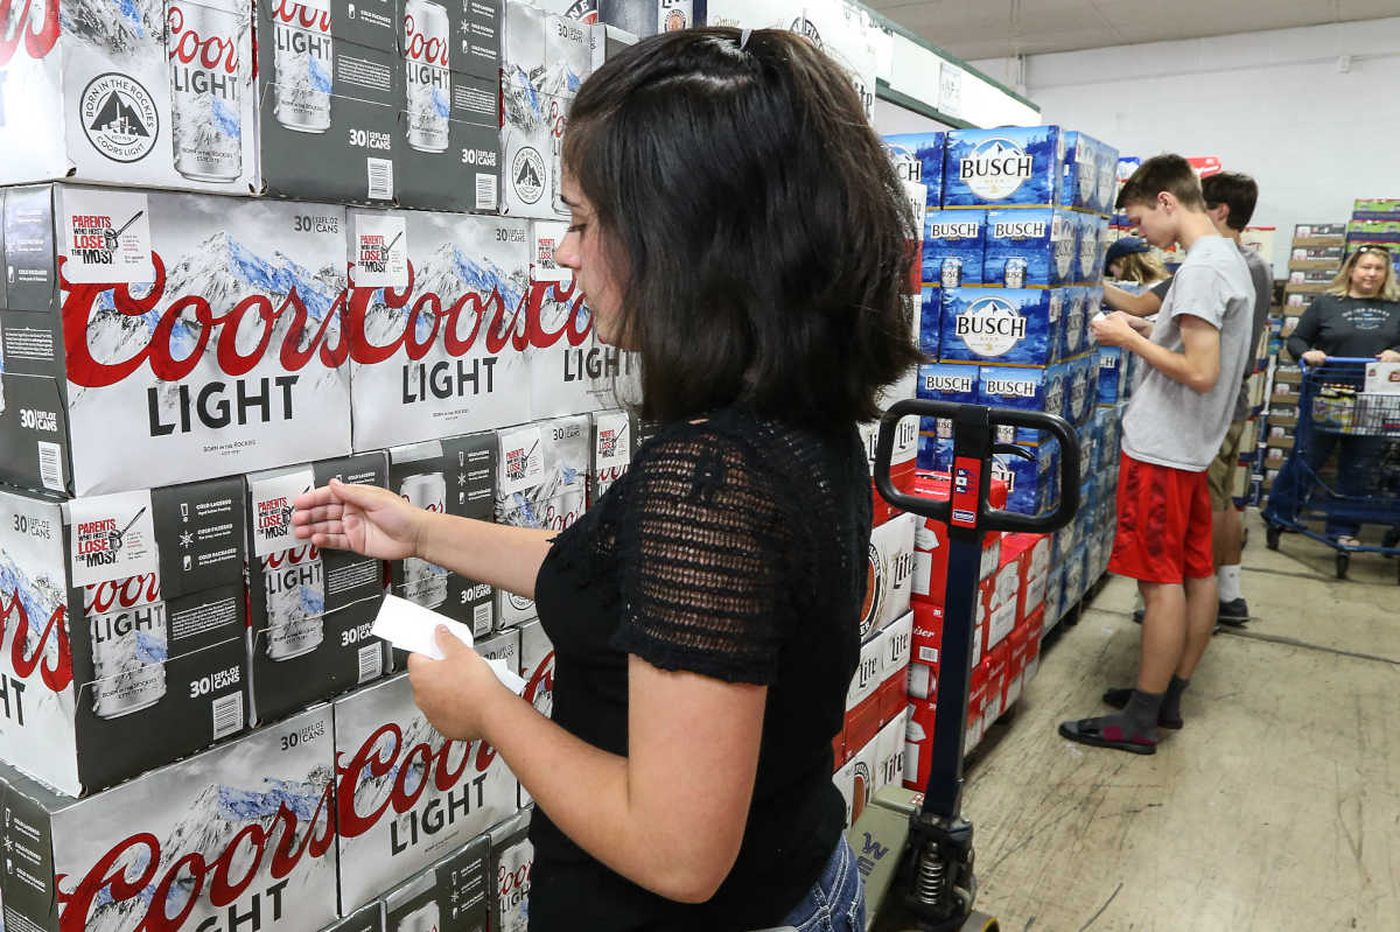 Teens to parents: Don't serve us booze over the Fourth